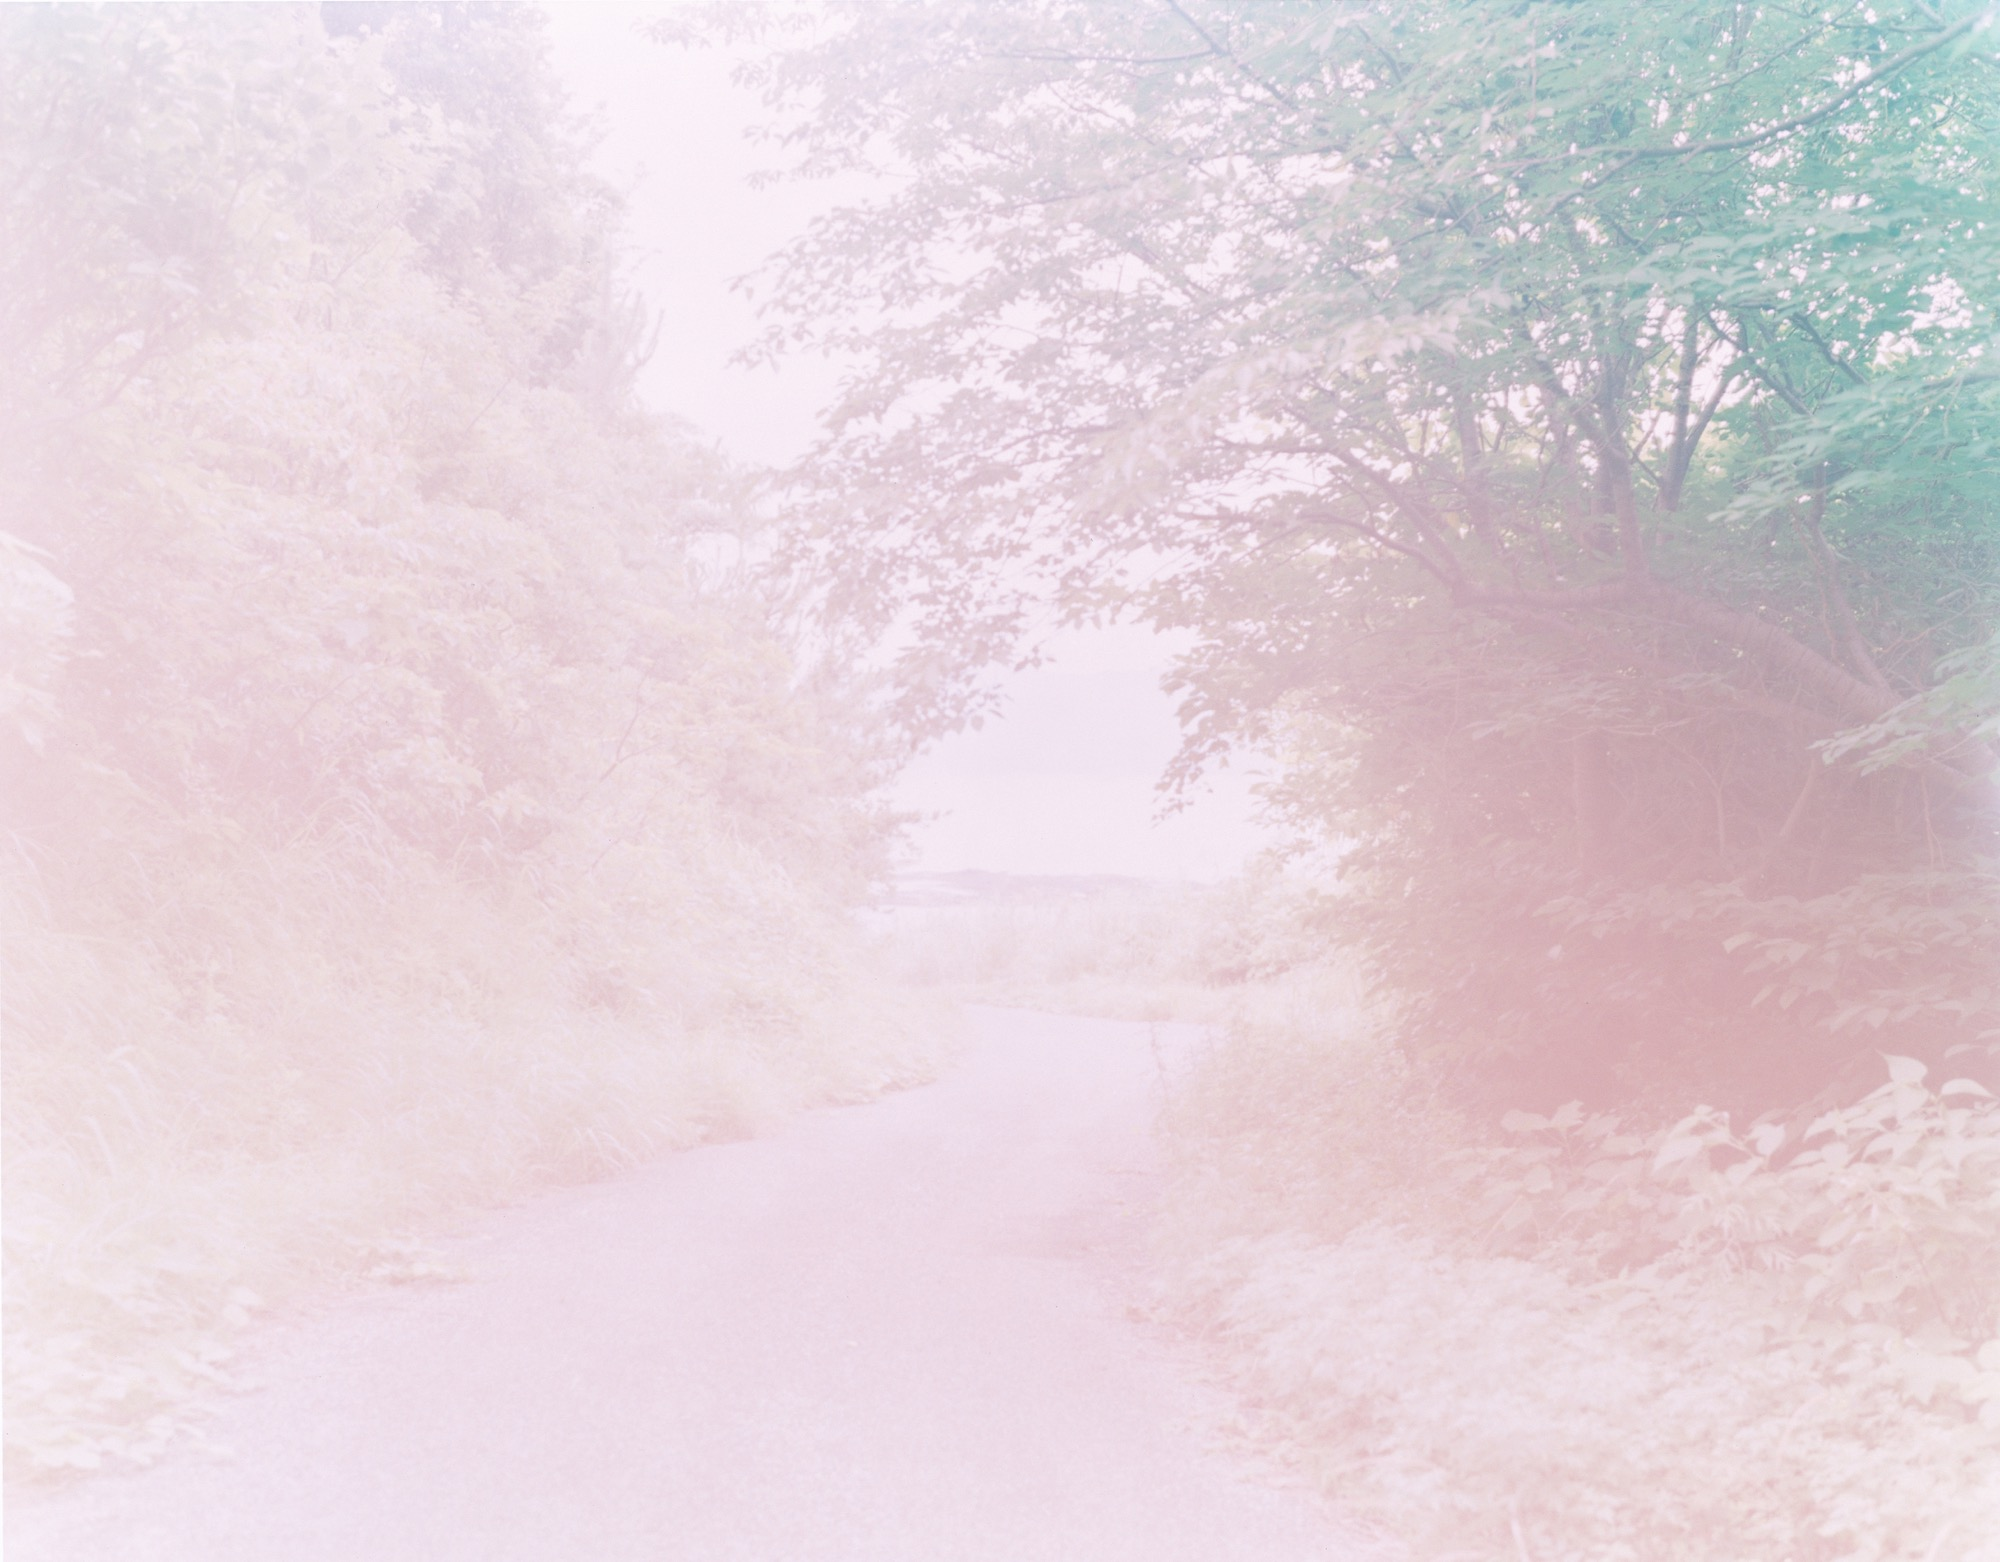 altblog-rinko-kawauchi-the-river-embraced-me-web